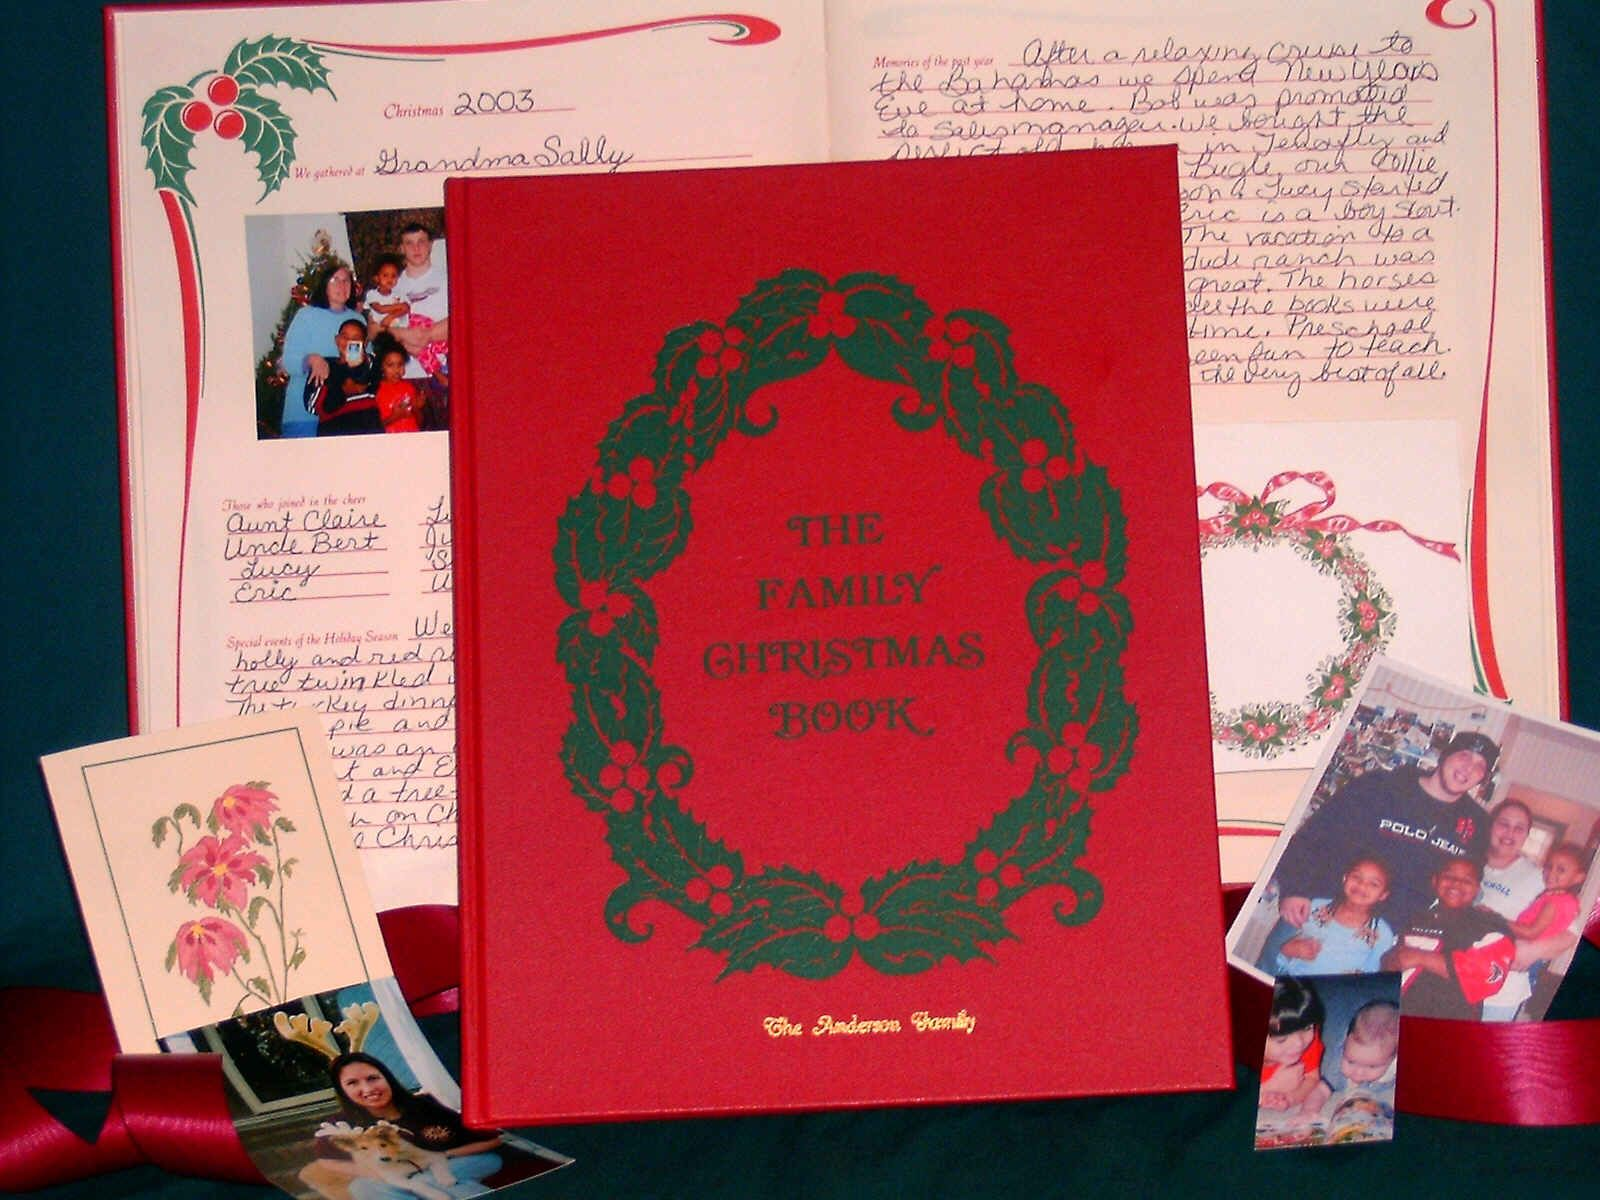 the family christmas book my parents bought this for us the first year we were married it holds 25 years